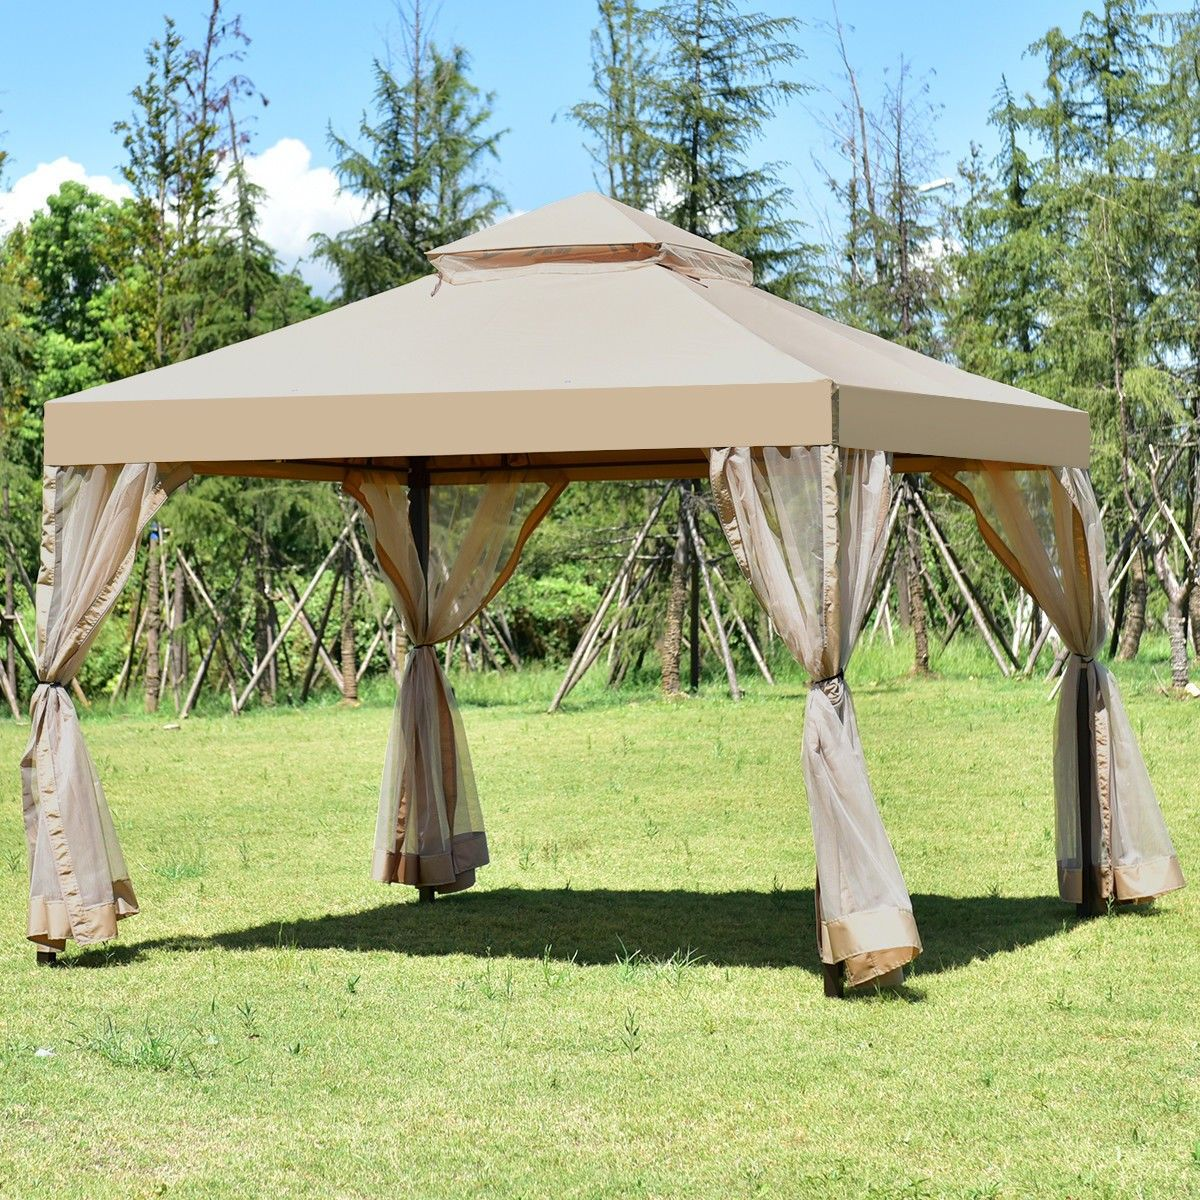 Outdoor 2 Tier 10 X 10 Screw Free Structure Shelter Gazebo Canopy Gazebo Canopy Patio Garden Gazebo